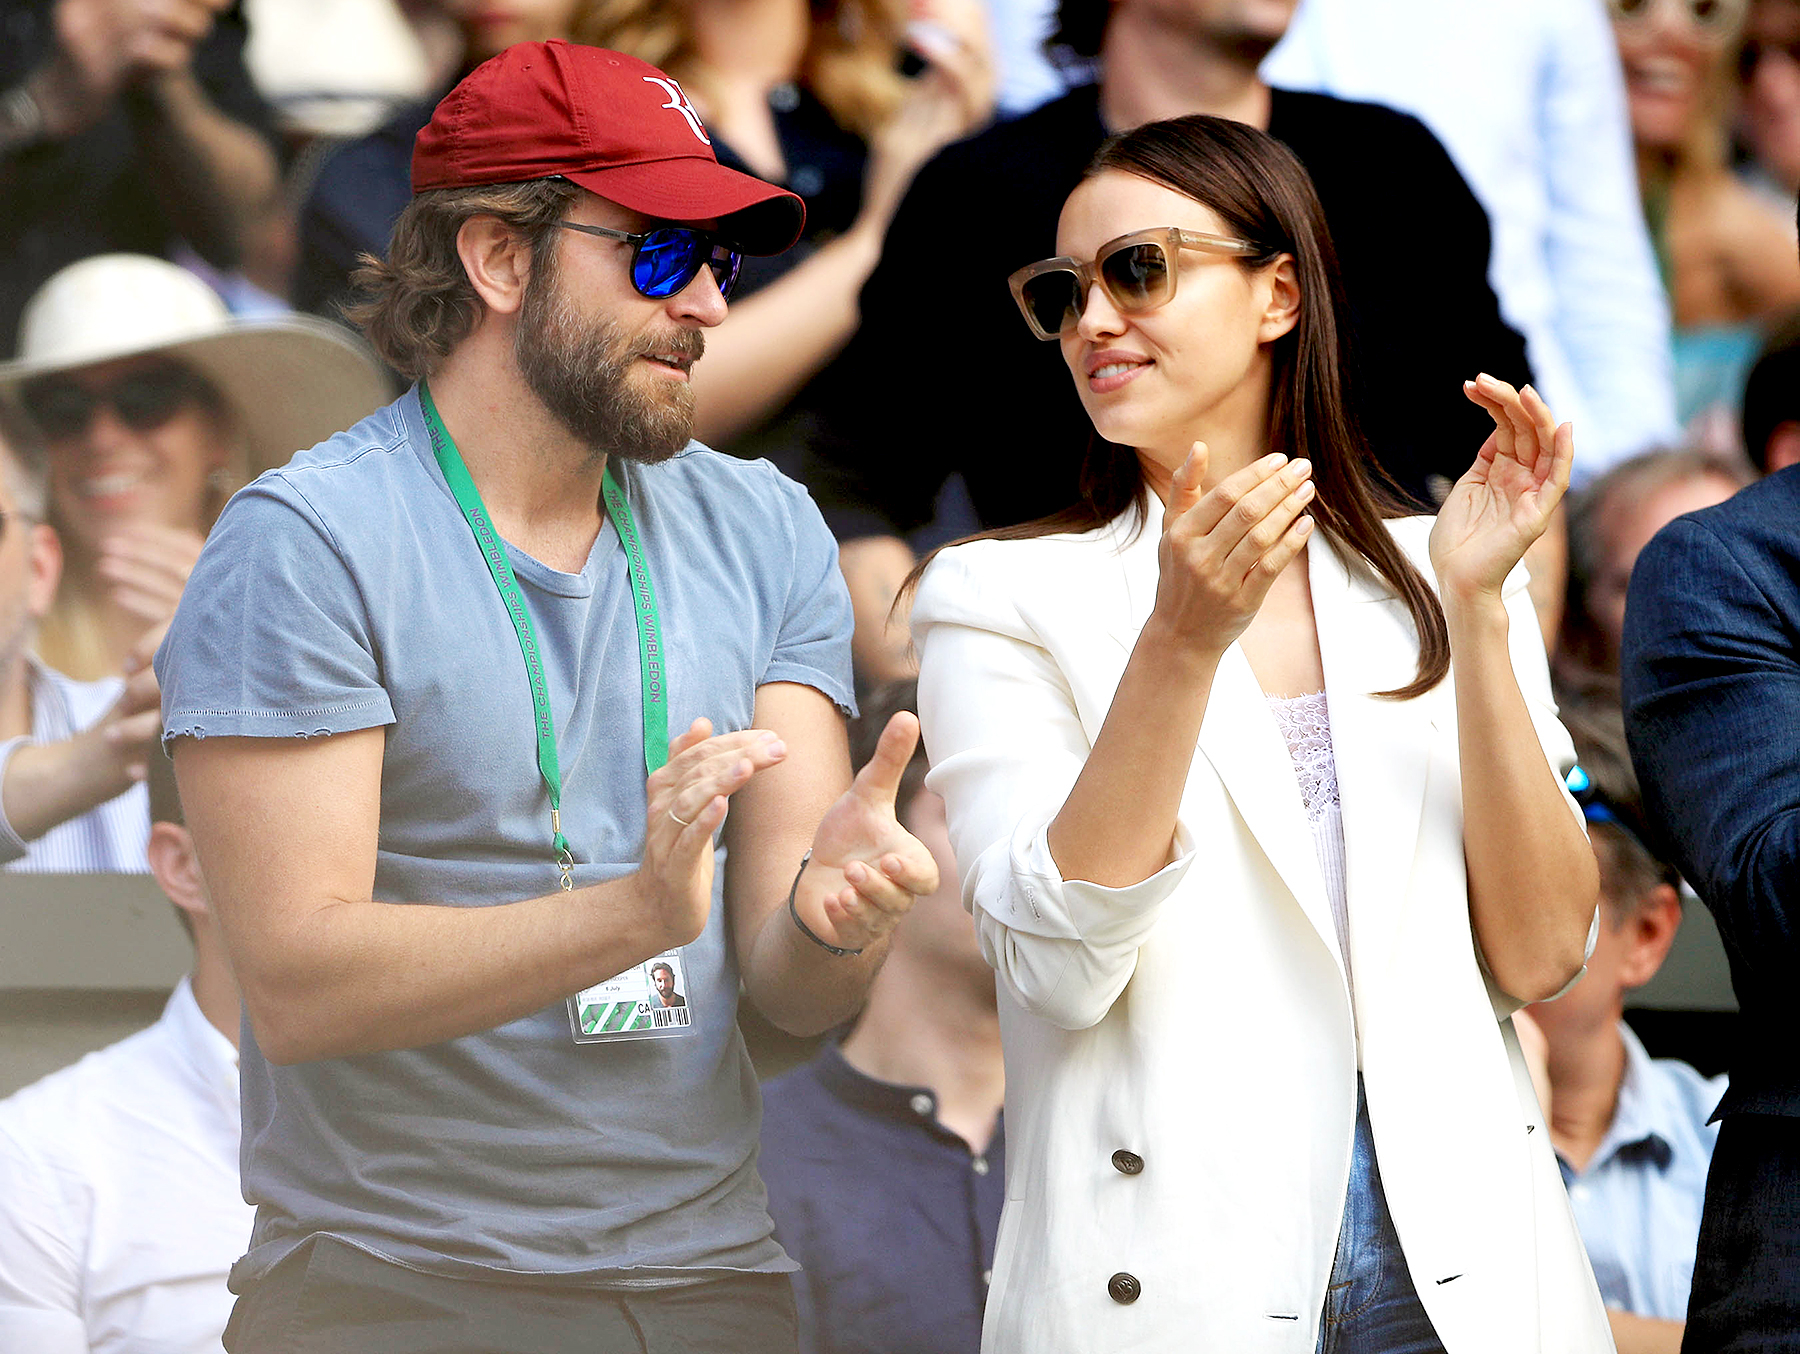 Bradley Cooper and Irina Shayk watch the action on centre court between Roger Federer and Marin Cilic on day nine of the Wimbledon Championships at the All England Lawn Tennis and Croquet Club, Wimbledon in July 2016.